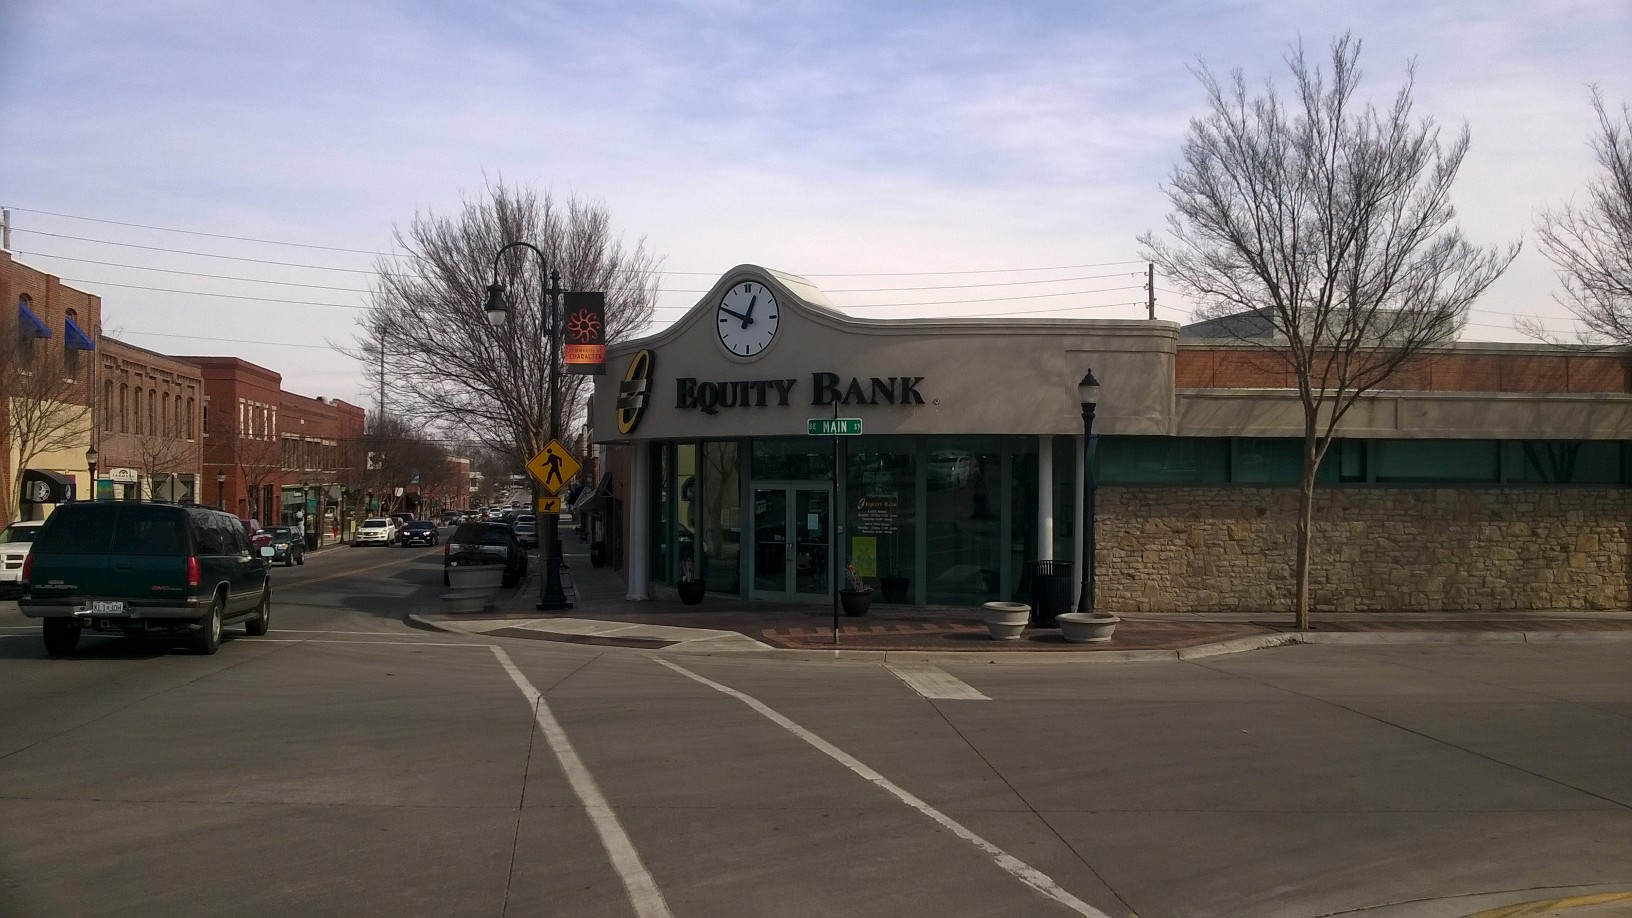 Equity Bank Lee's Summit Downtown branch exterior.